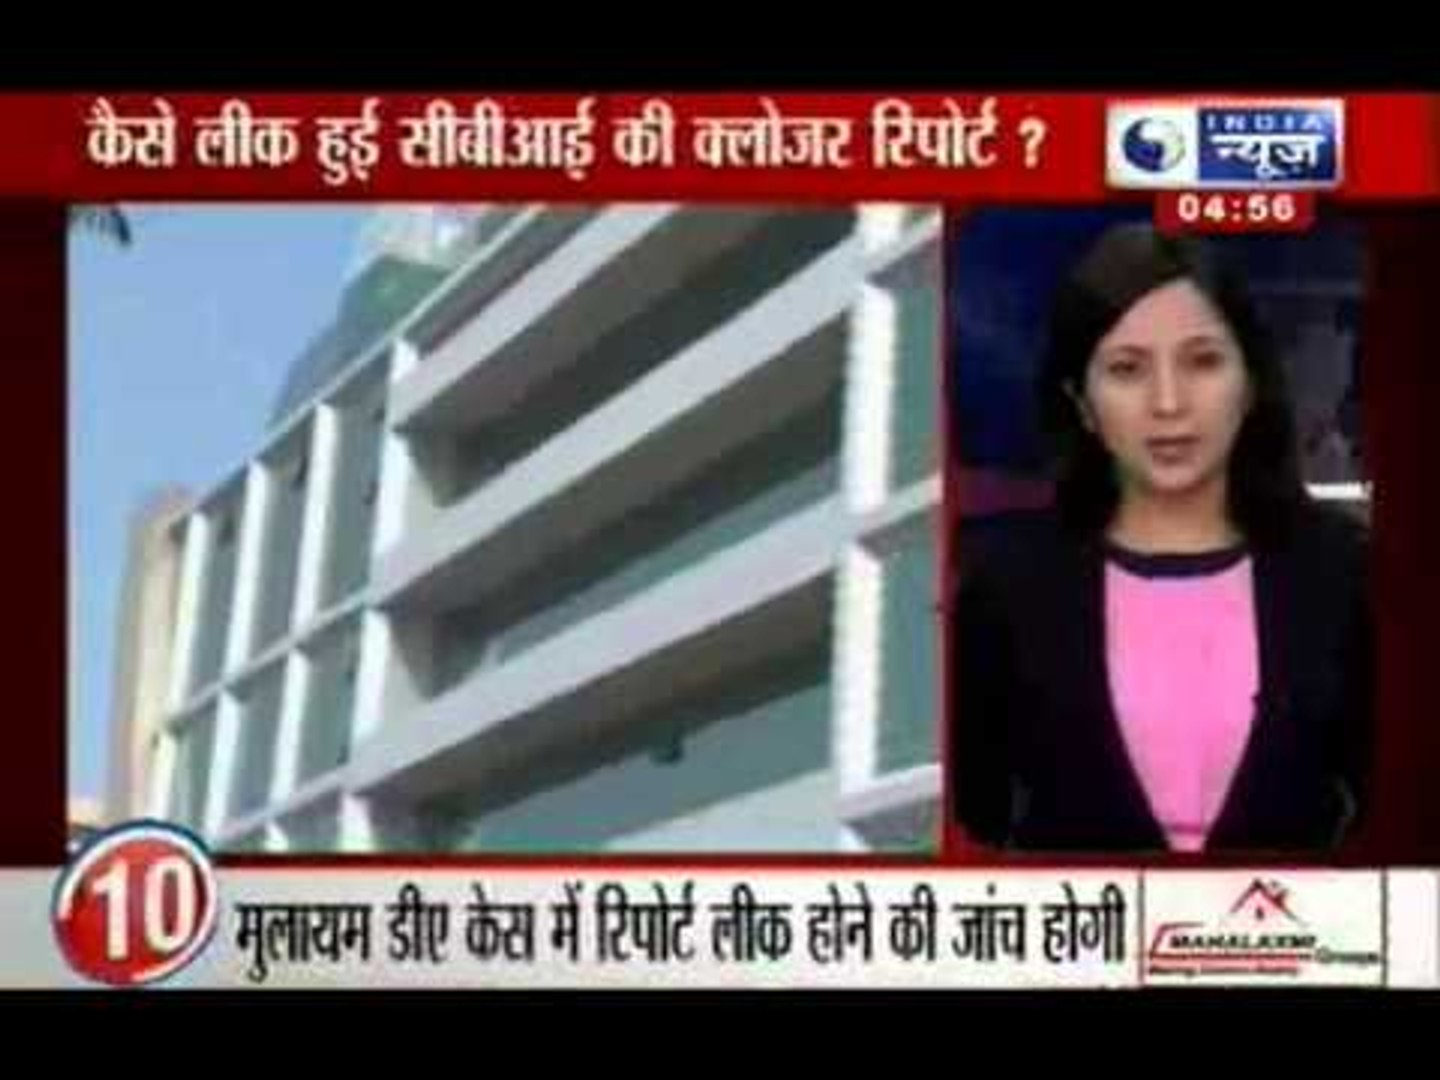 India News: News 25 24th July 2013 4 P.M.